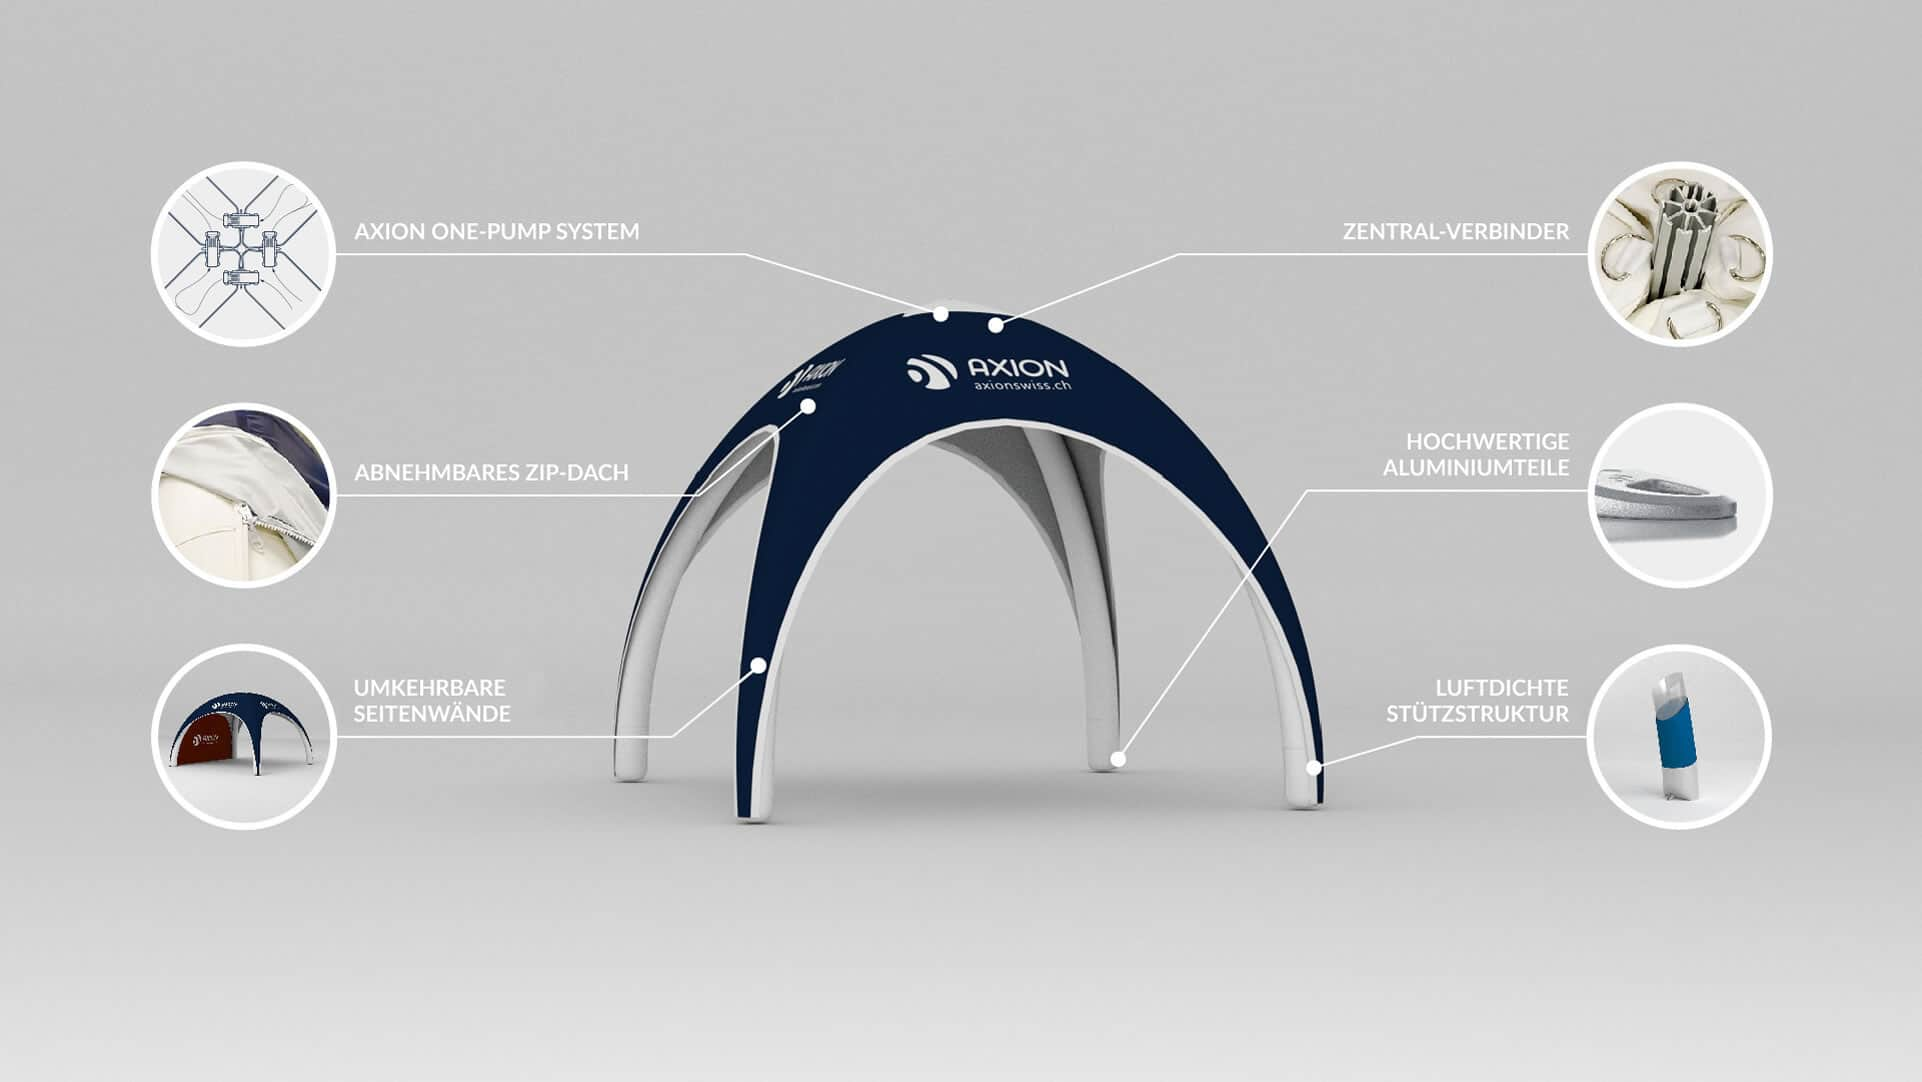 axion-lite-tent_main-feature